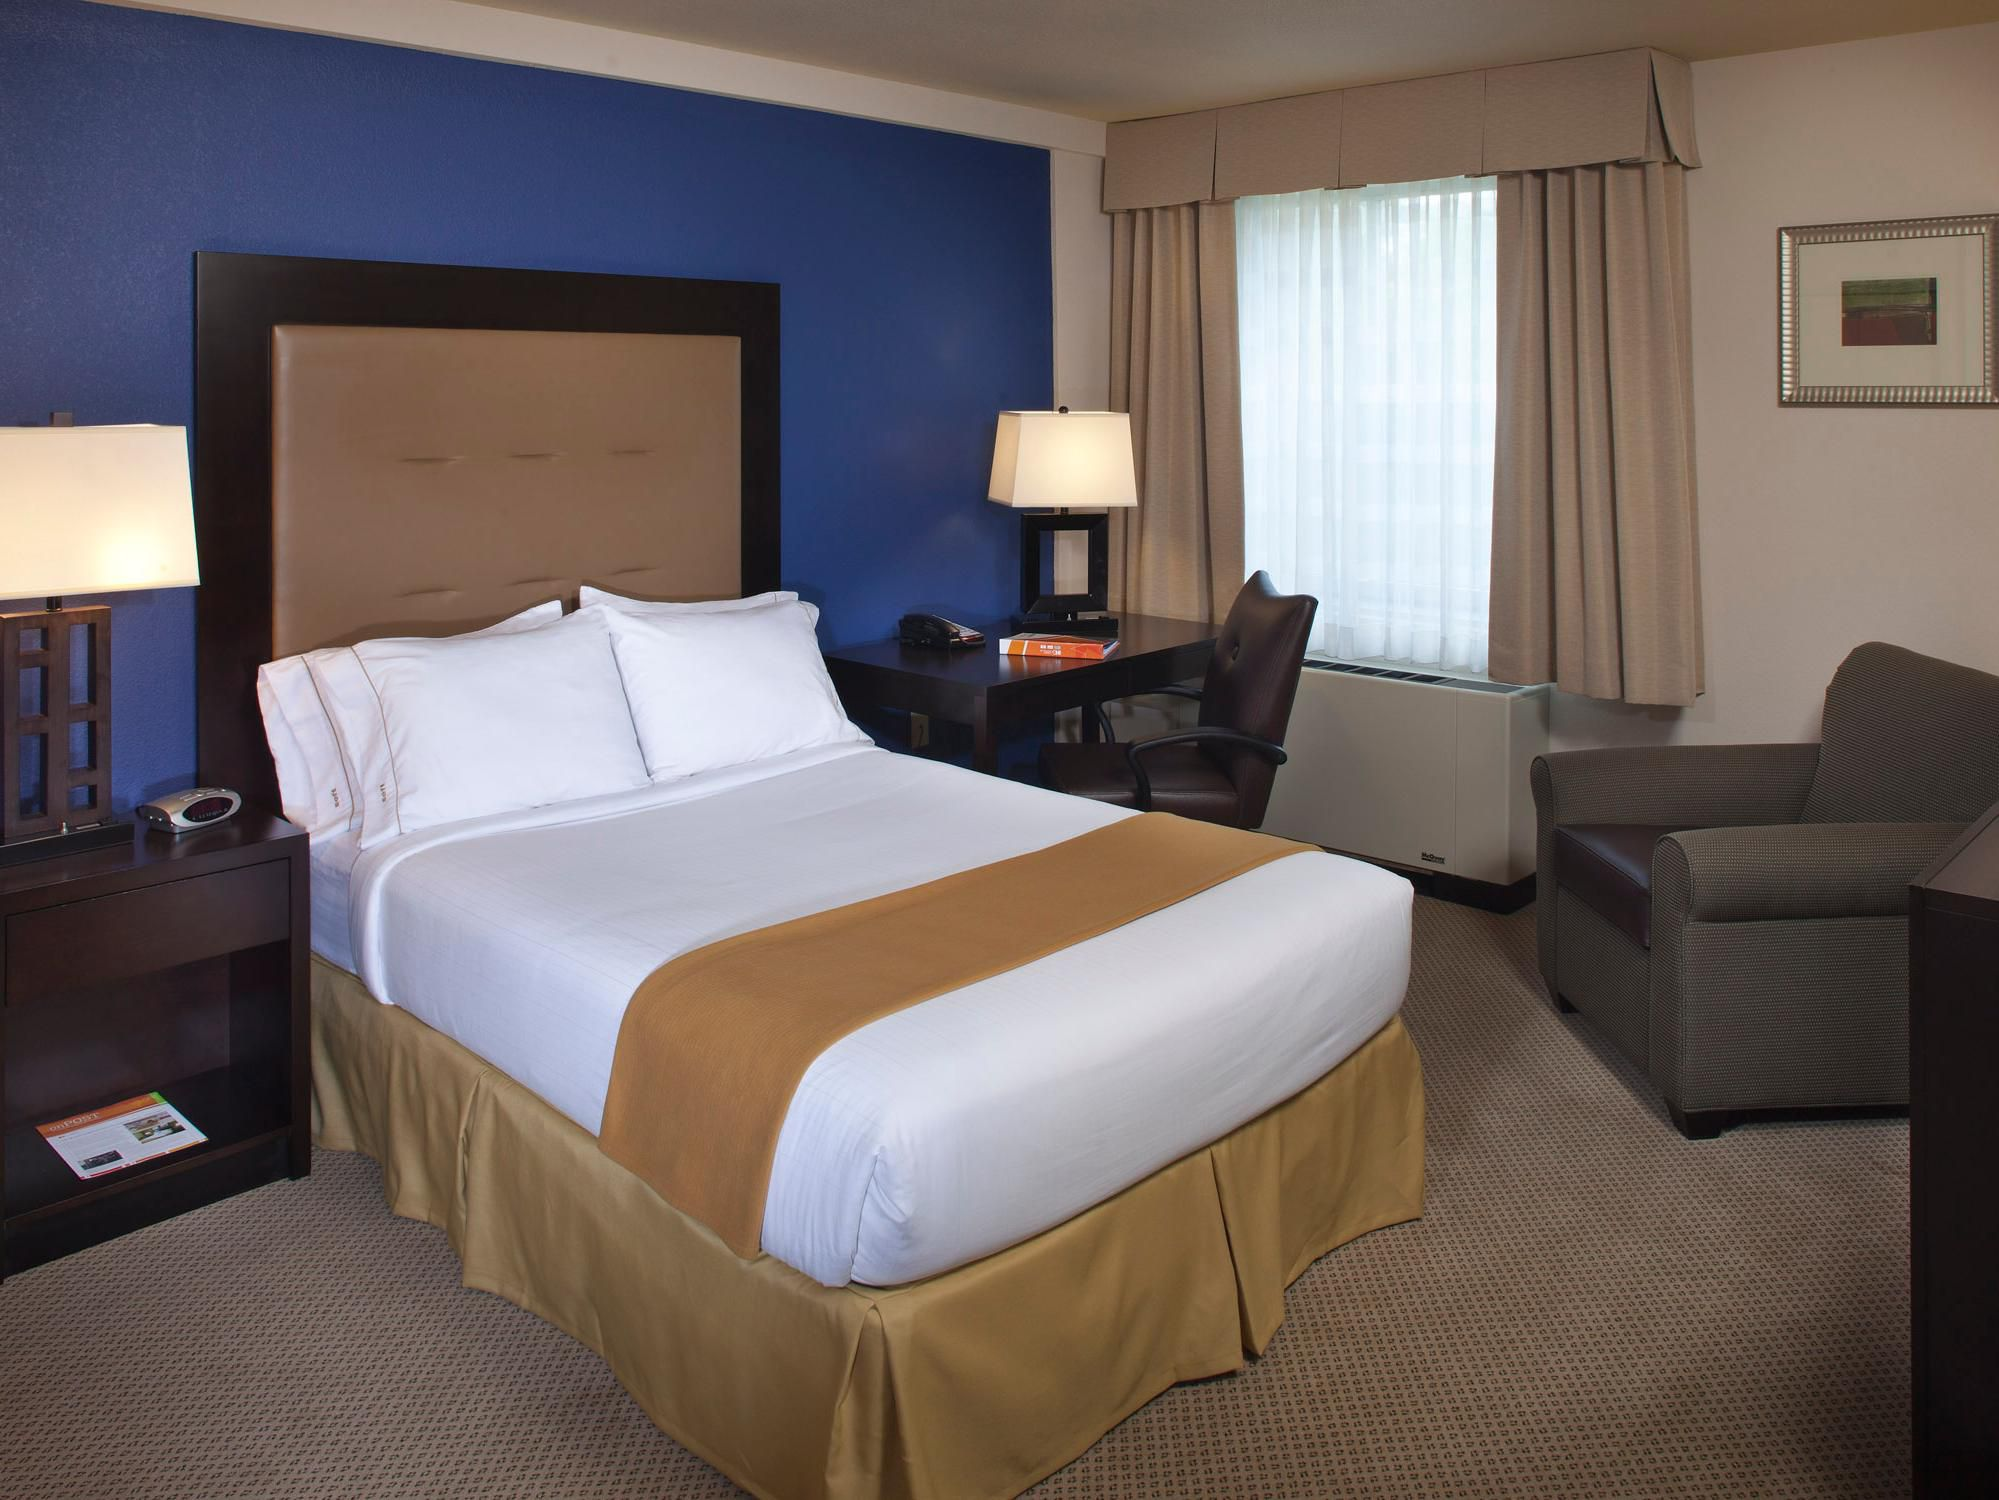 Rooms And Rates For Ihg Army Hotels Building 308 At Fort